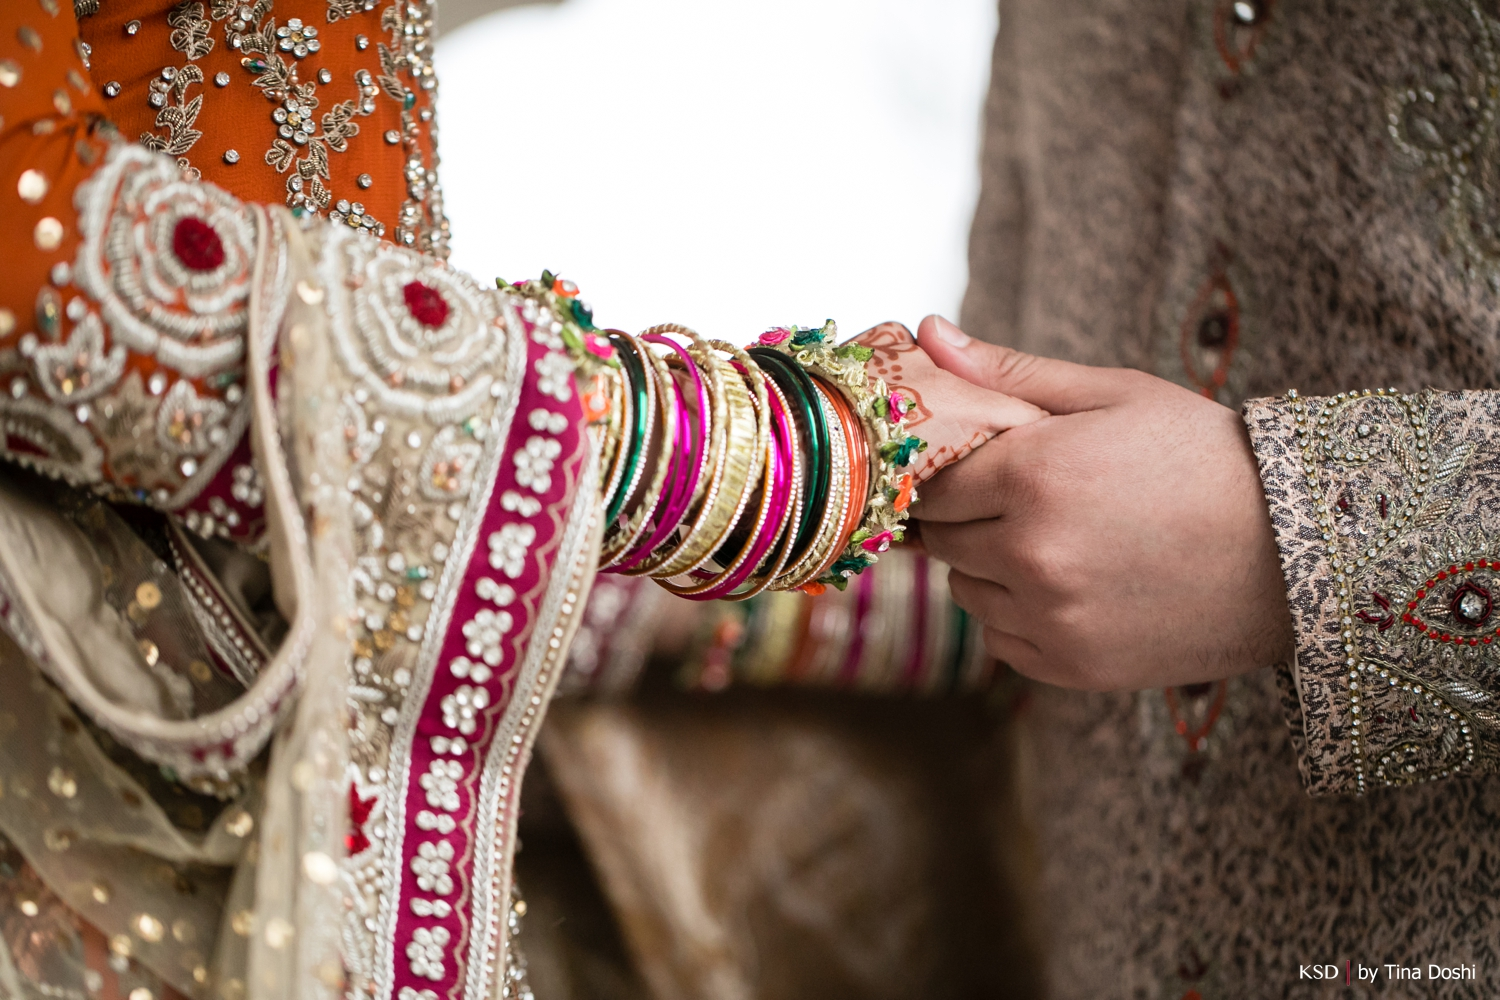 nj_south_asian_wedding_0018